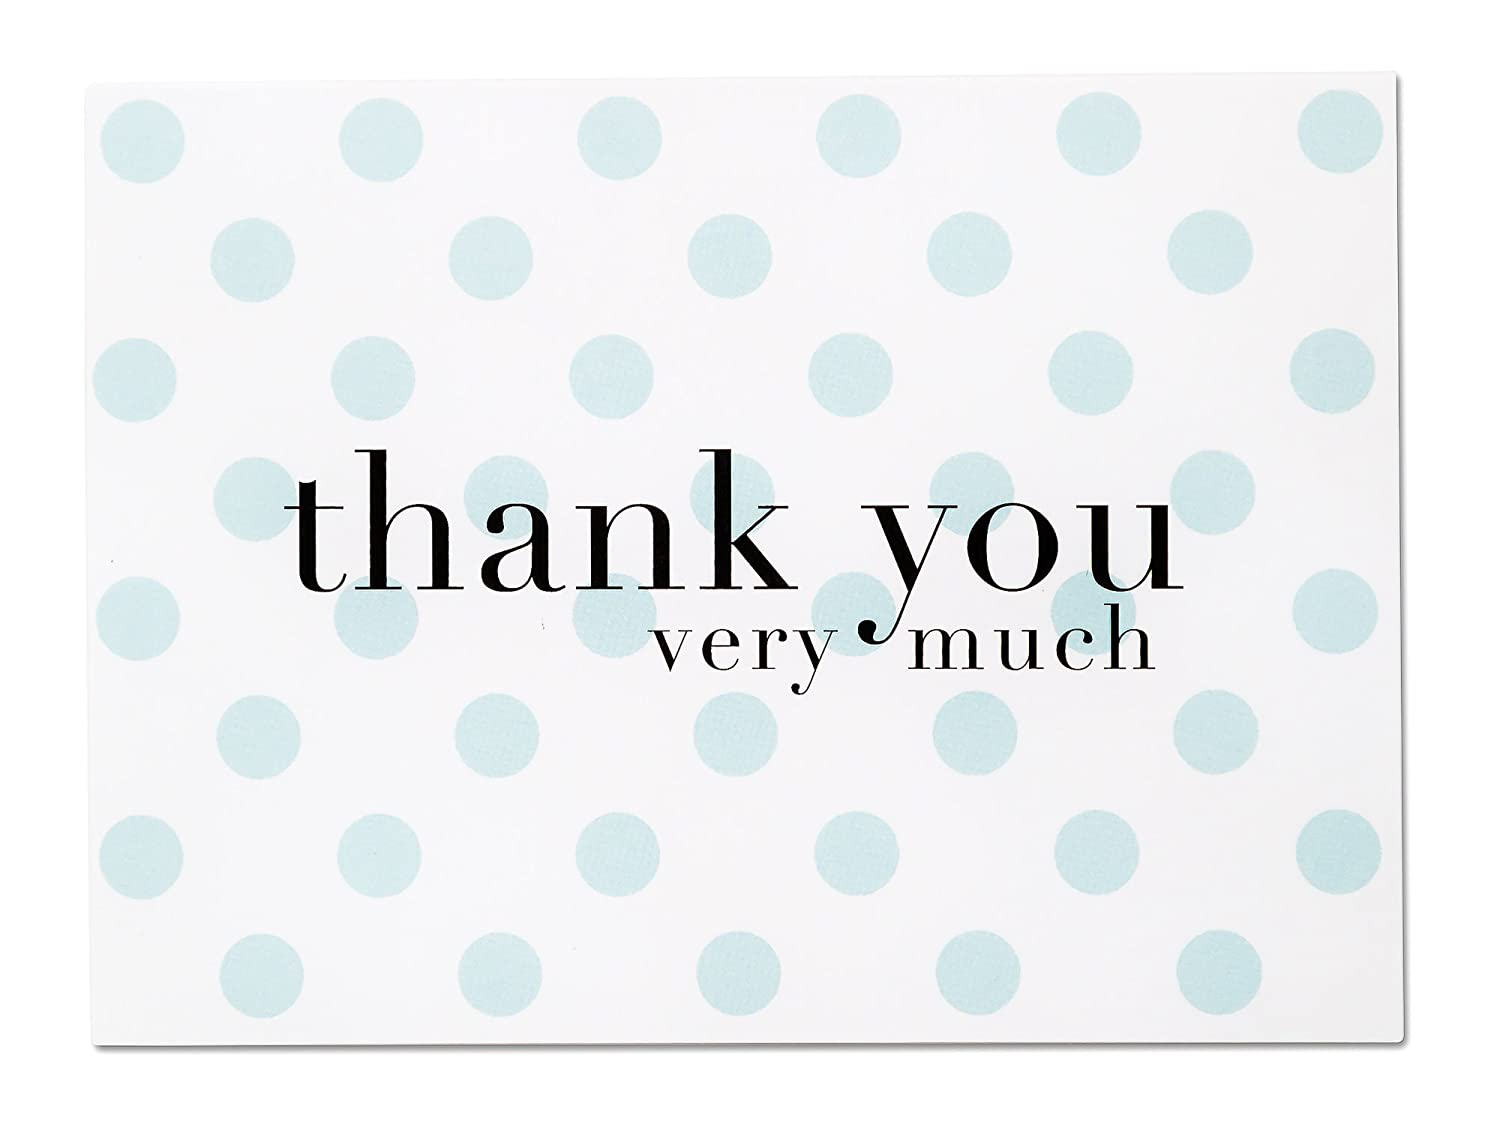 Amazon.com : Baby Shower Thank You Cards for Baby Boy - 36 Blue Polka Dot  Blank Note Cards with White Envelopes (Baby Blue) : Office Products